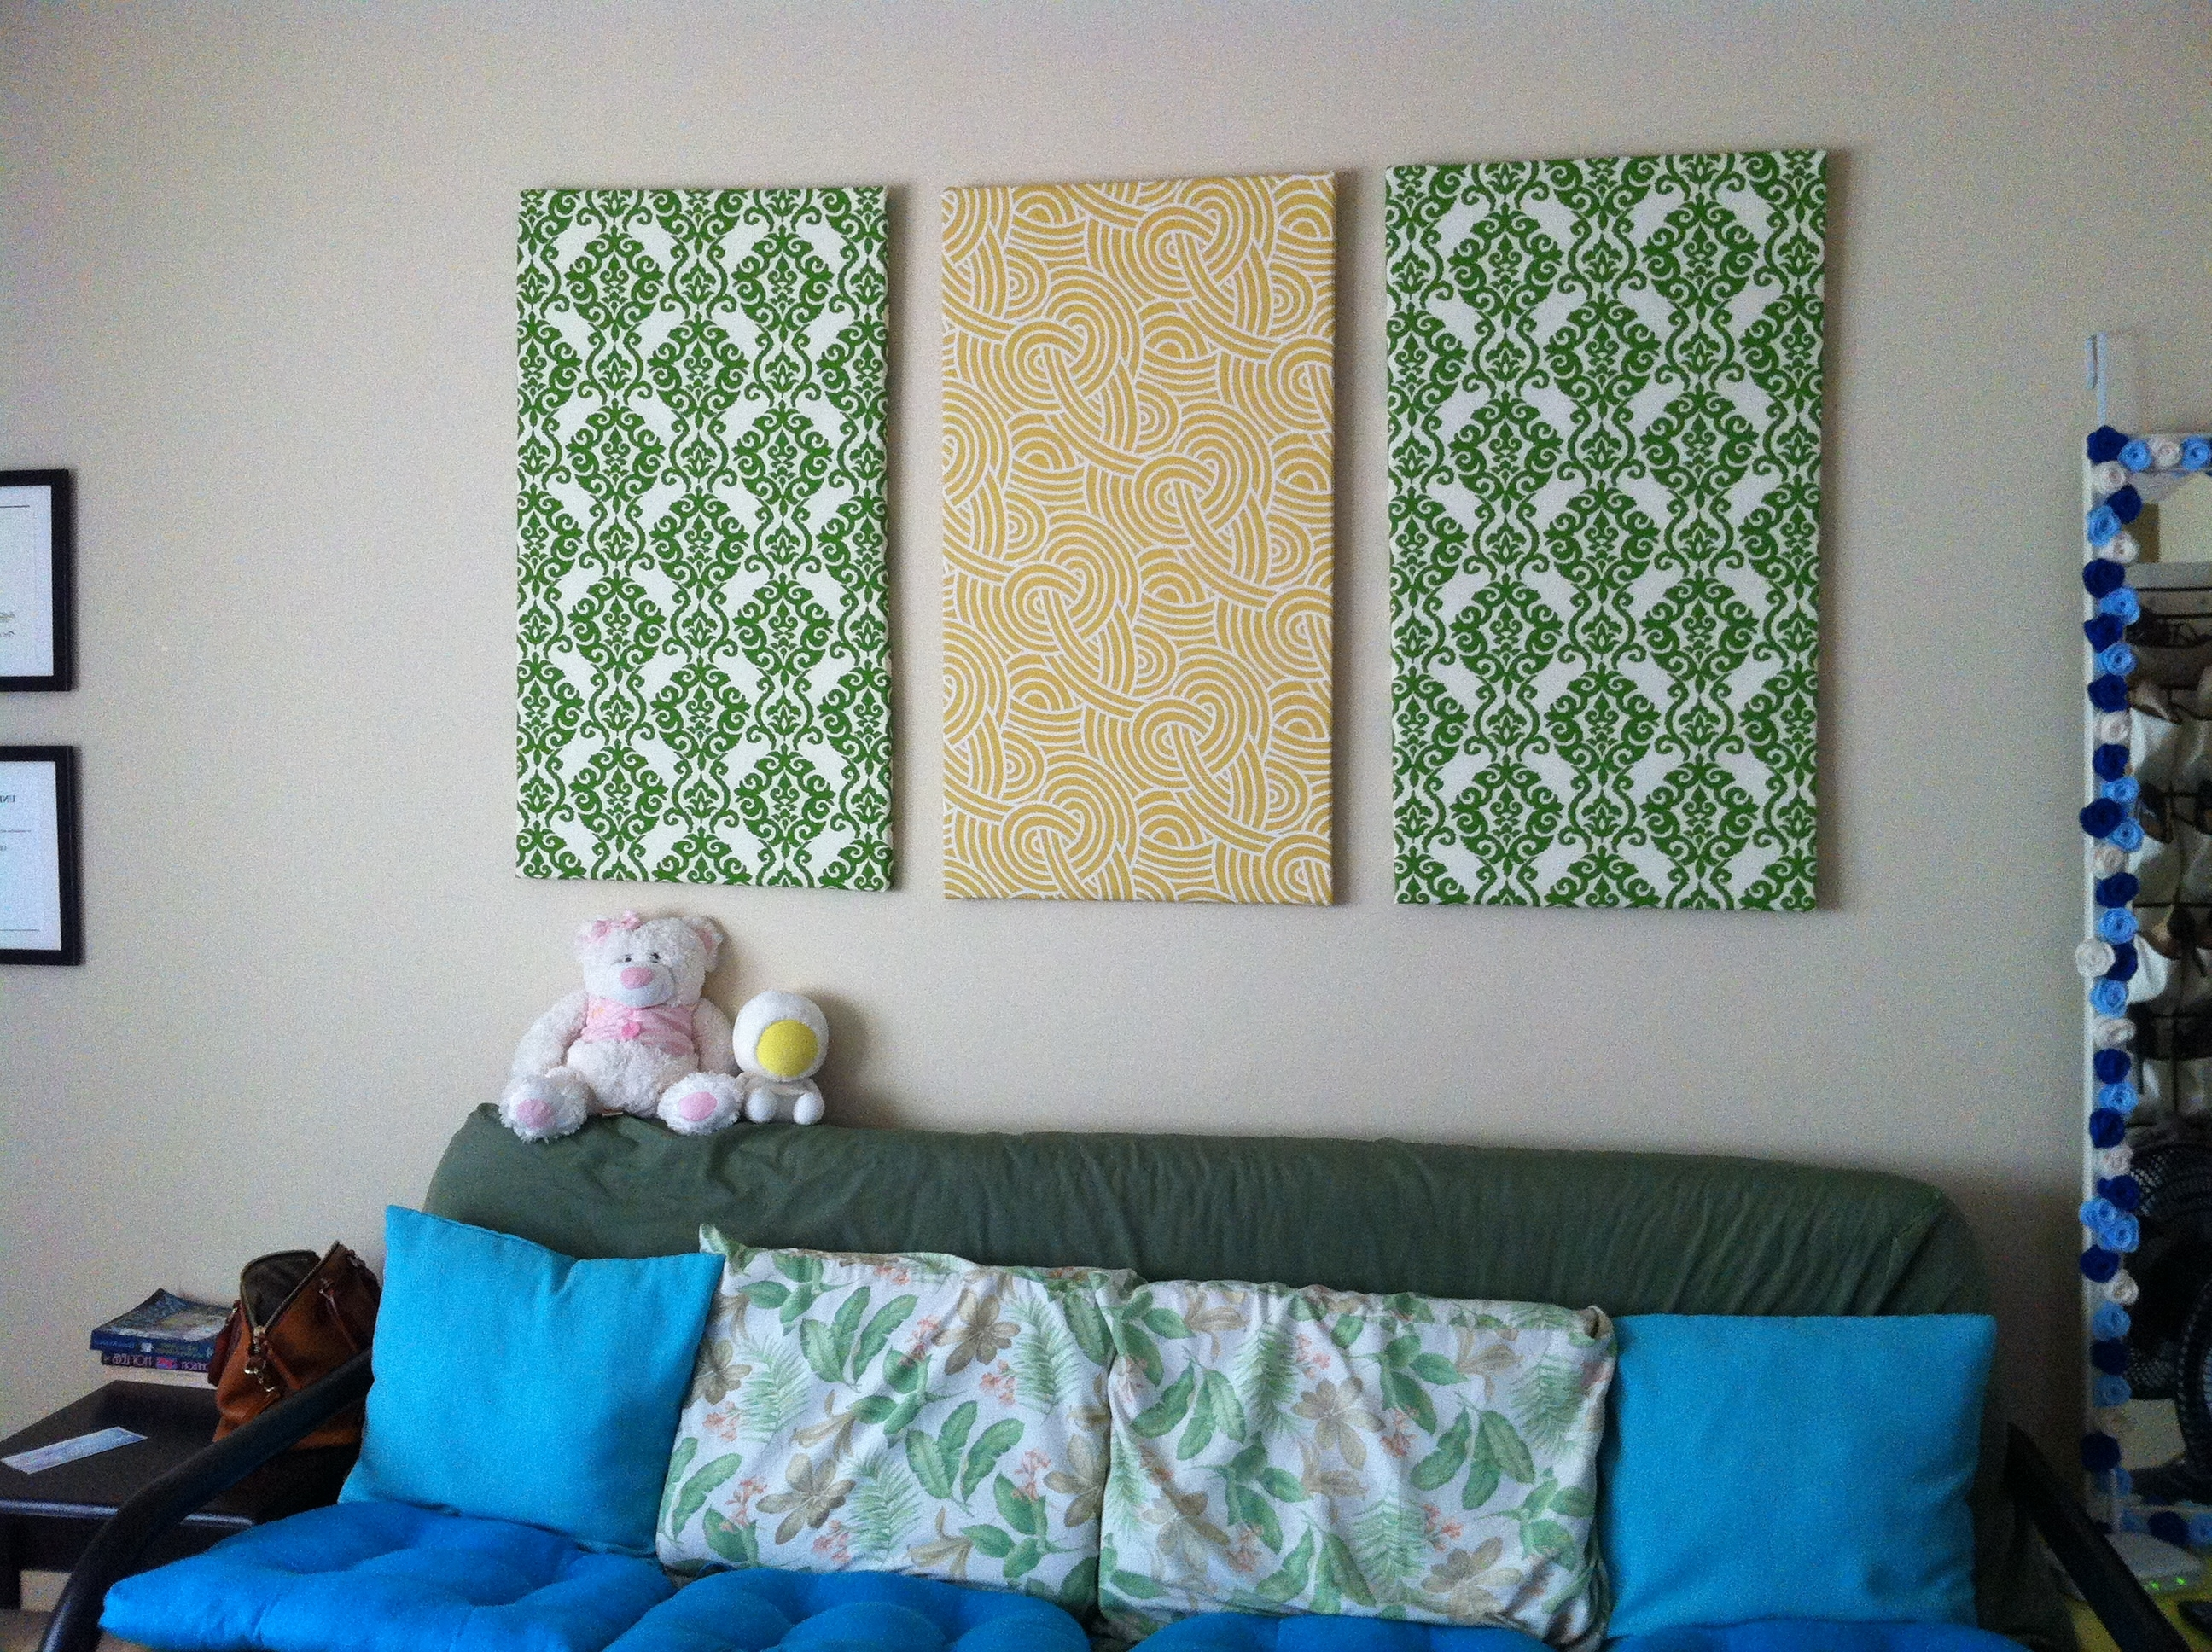 Diy Fabric Wall Art Panels Intended For Well Known Wall Art Decor Ideas: Canvas Separated Panels Diy Fabric Wall Art (View 4 of 15)